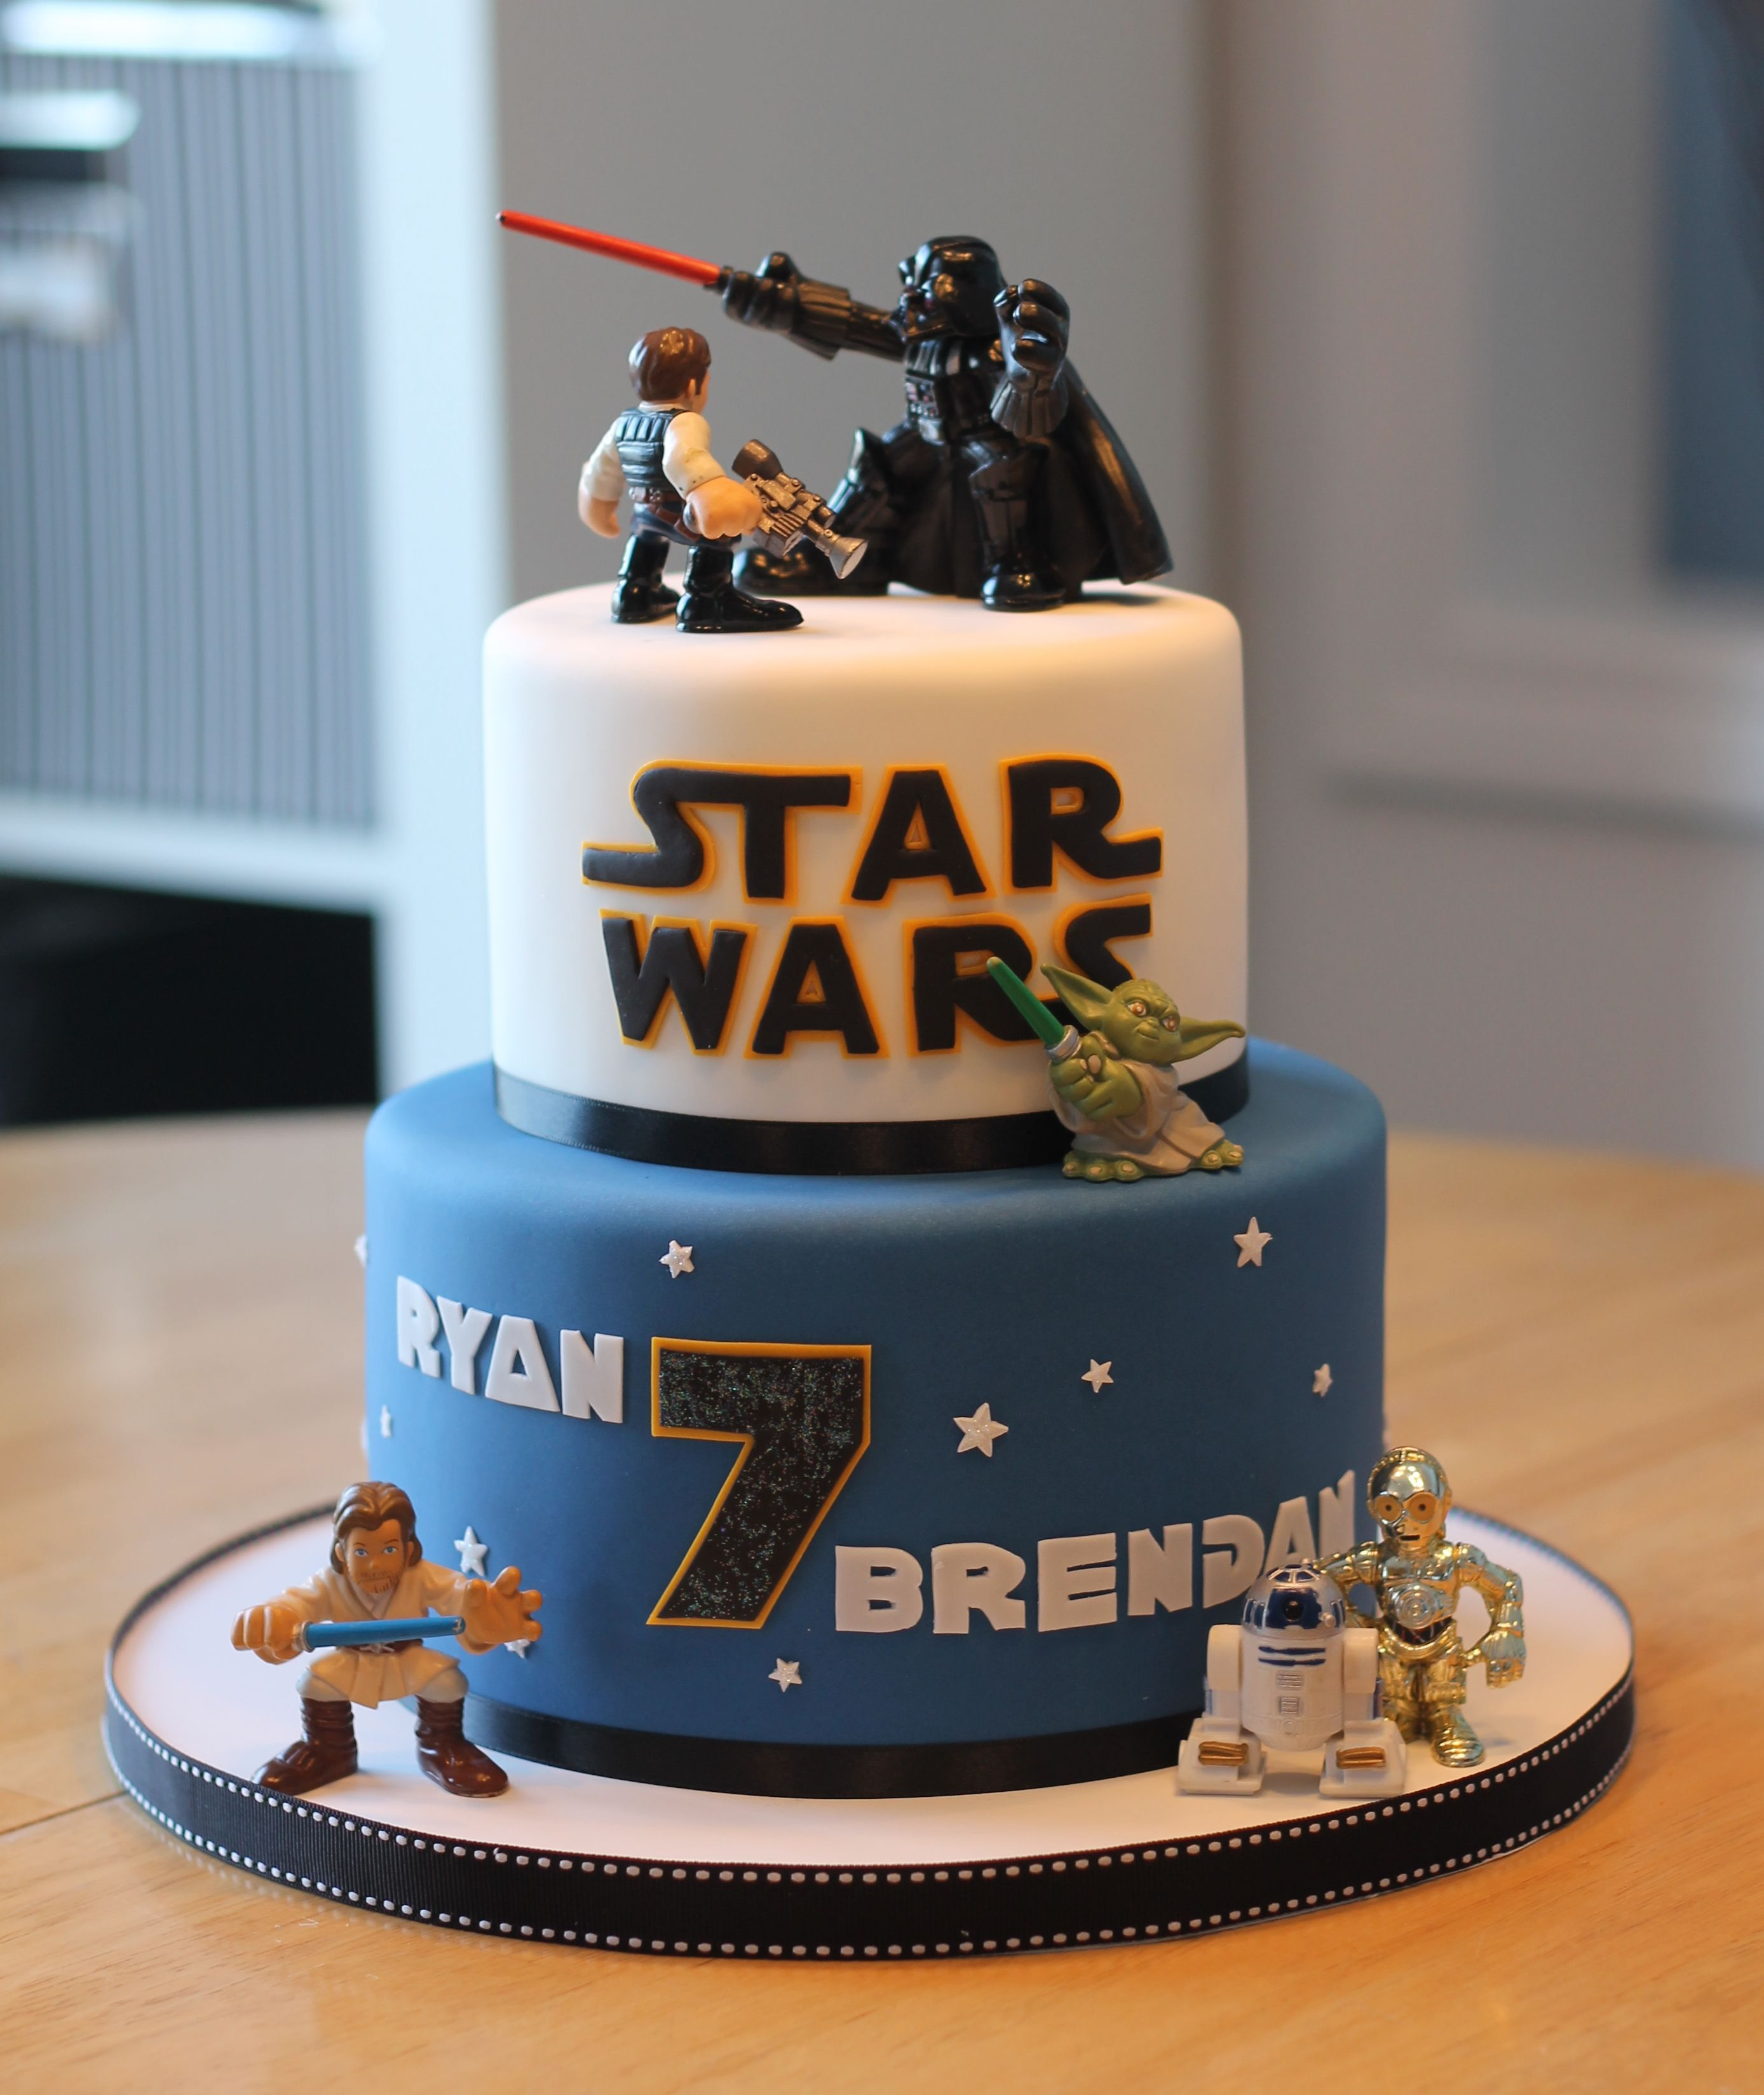 Star Wars Küche Two Tier Star Wars Themed Birthday Cake For Twins Ryan Brendan